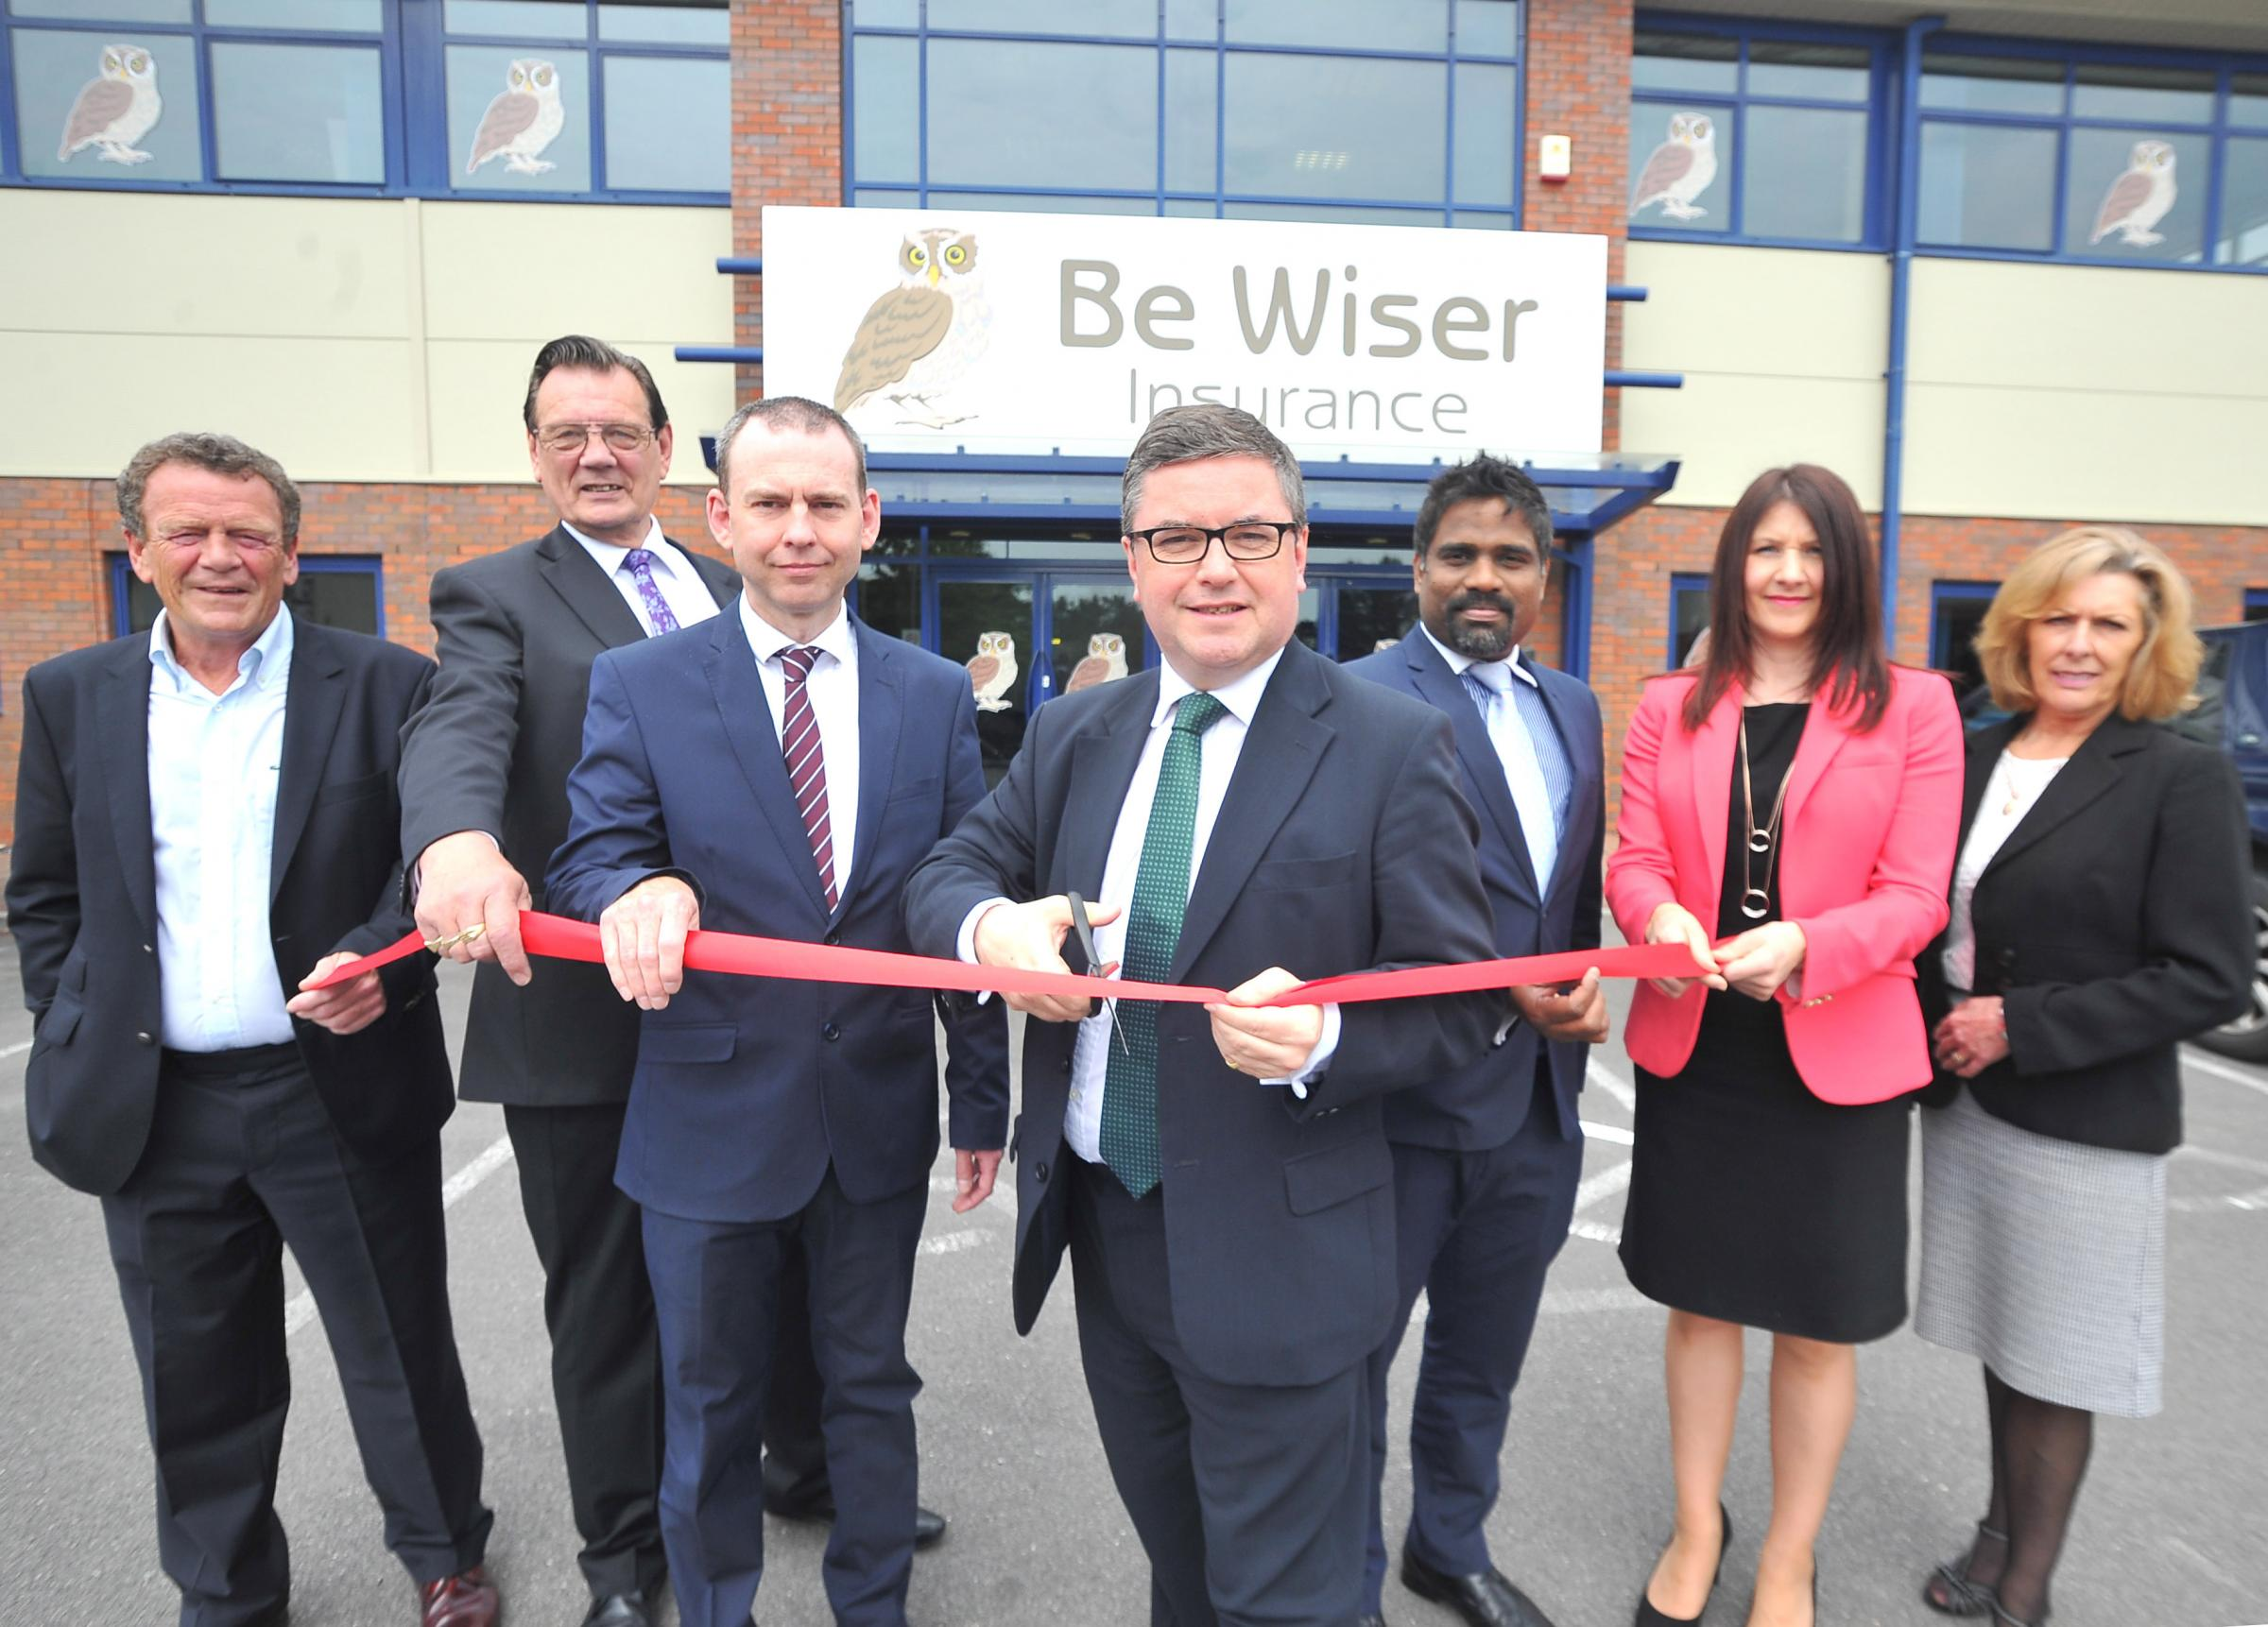 One of the UK�s fastest growing and largest privately owned insurance brokers, Be Wiser, has decided to open its new office in Swindon, creating 350 jobs over the next three years. Join the company, along with local councillors and MP Robert Buckl